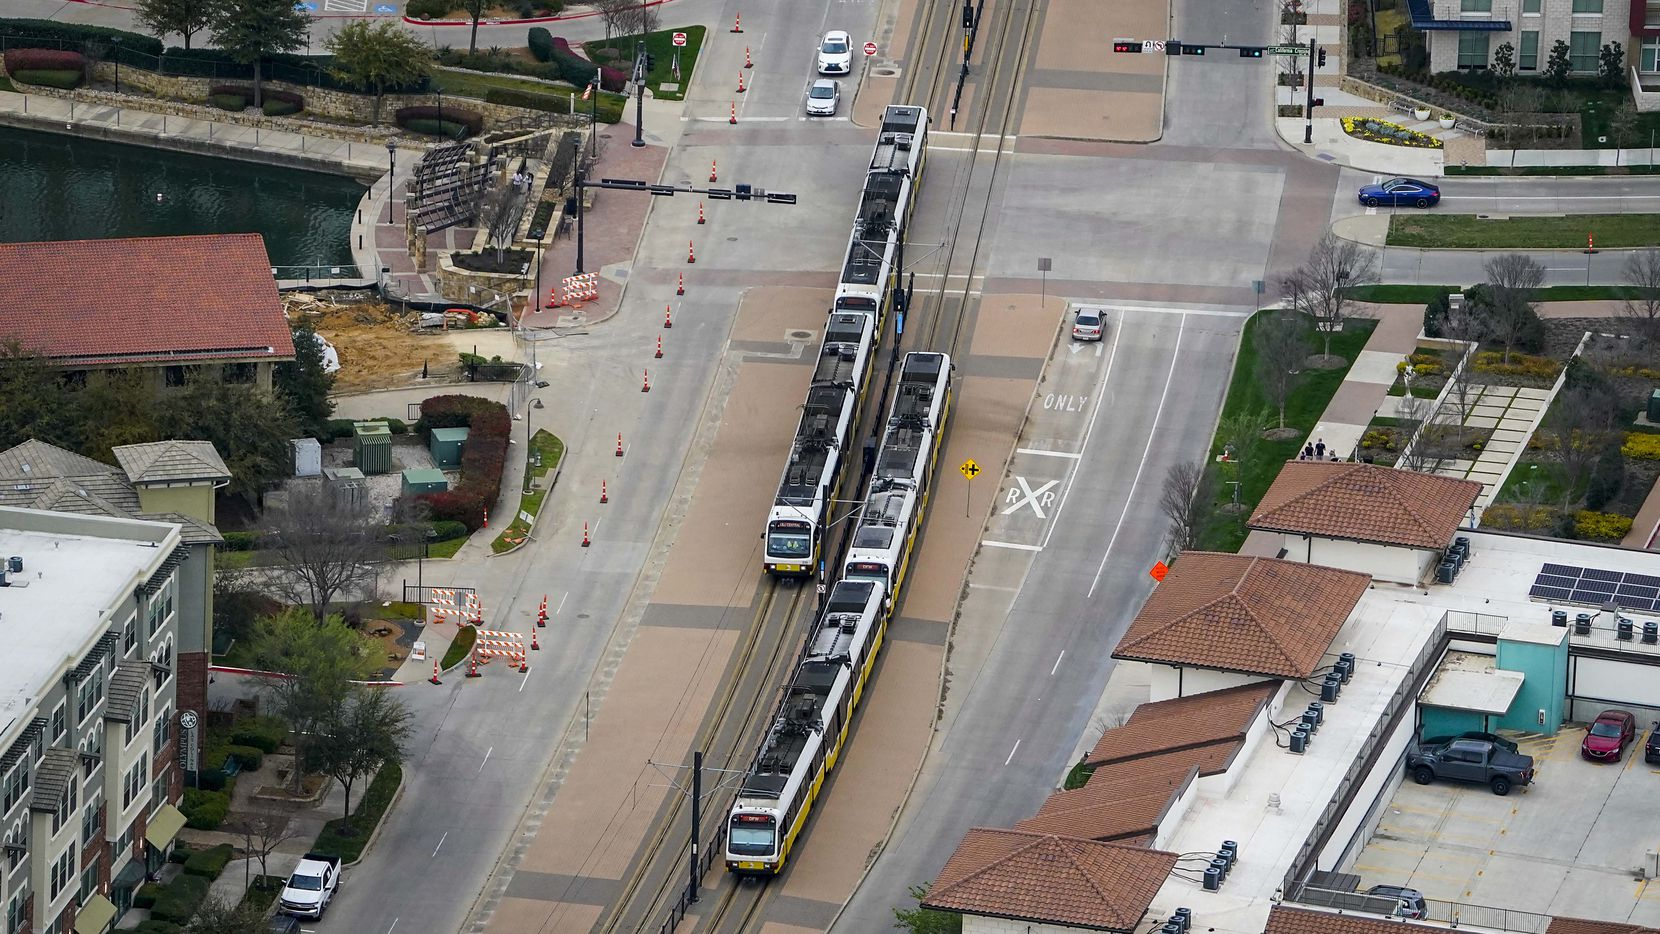 Aerial view of DART rail trains passing near Urban Center station in Las Colinas on Thursday, March 12, 2020, in Irving.